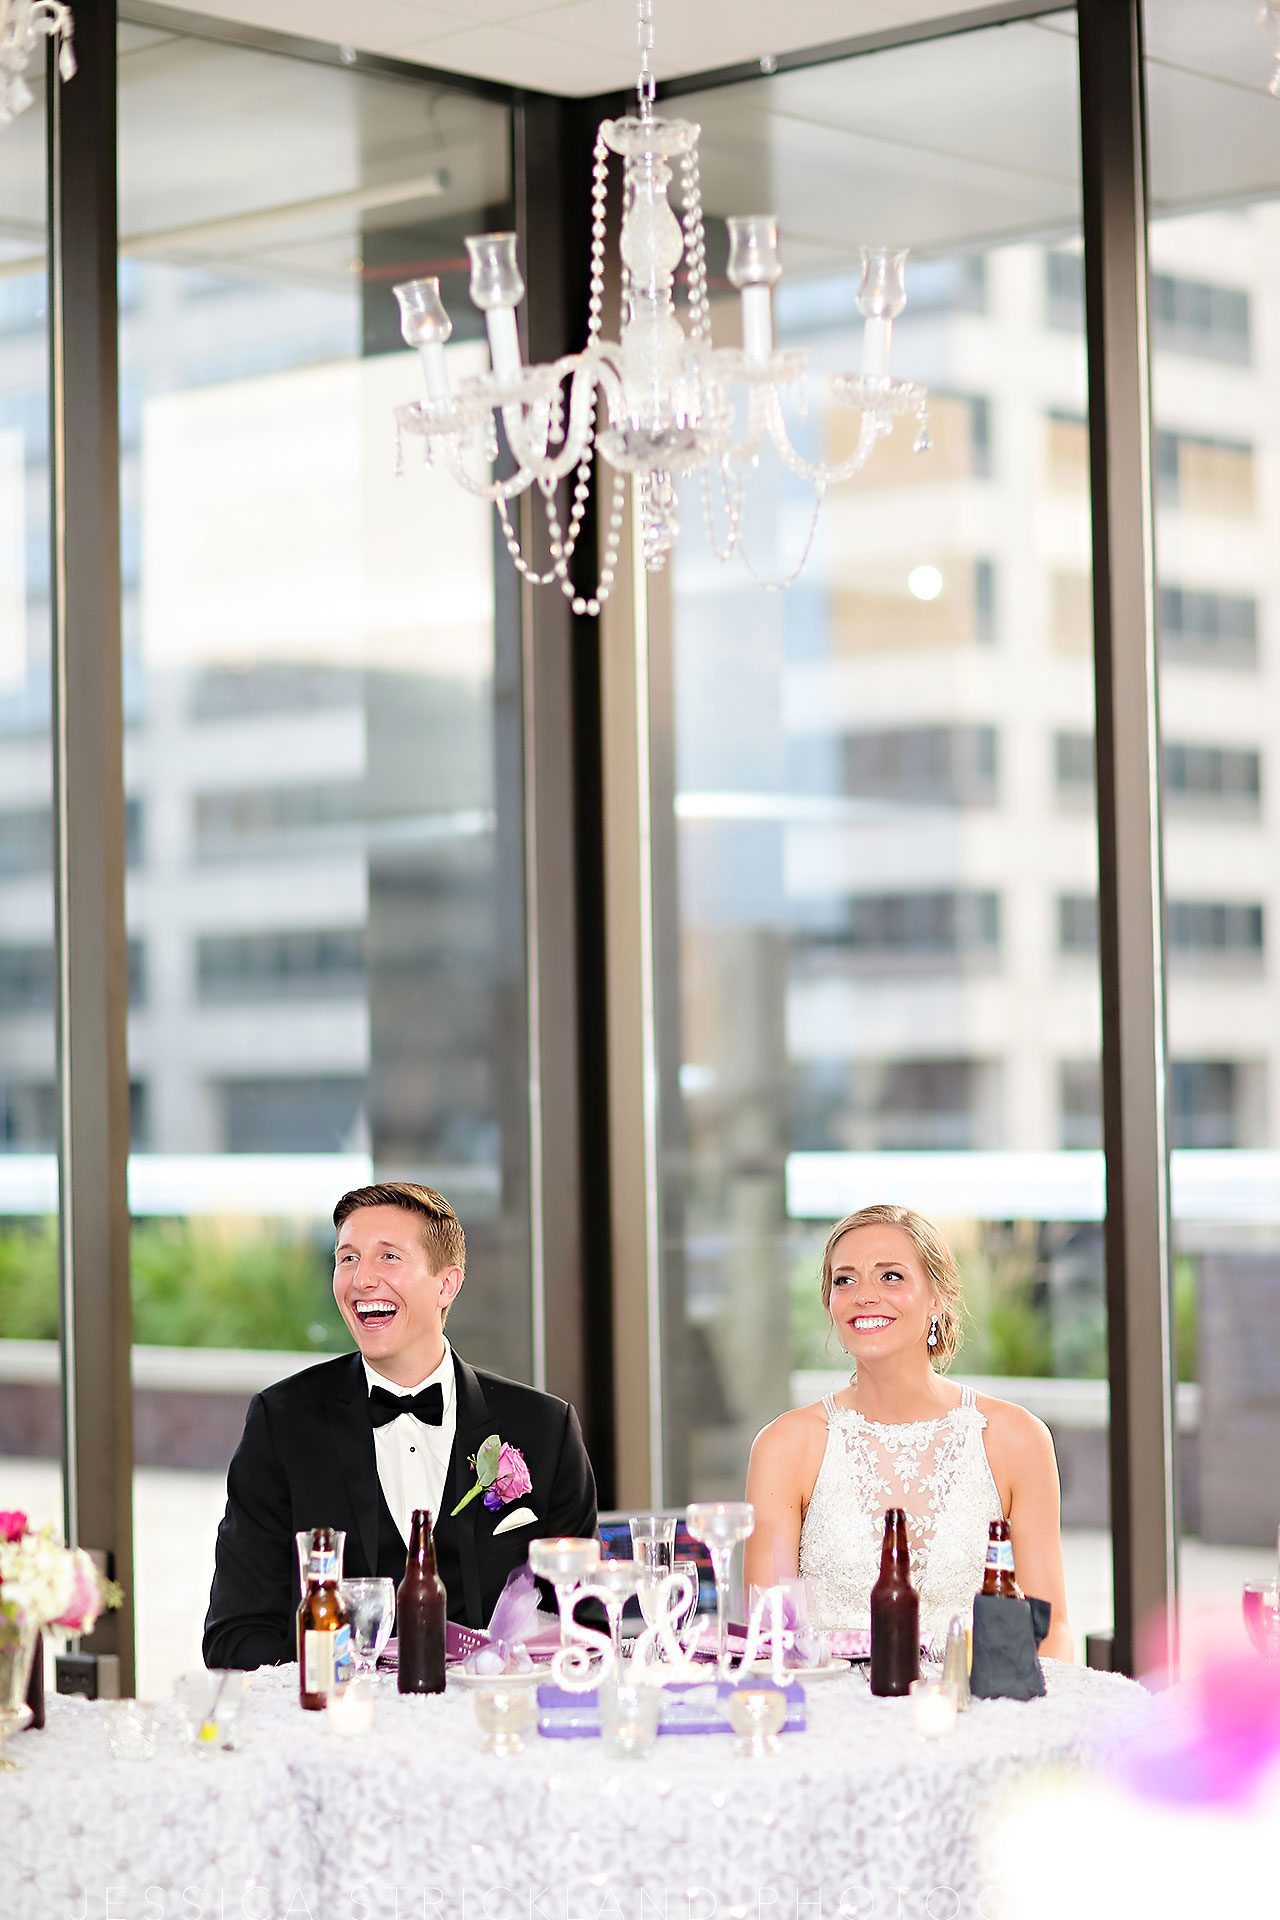 Serra Alex Regions Tower Indianapolis Wedding 310 watermarked